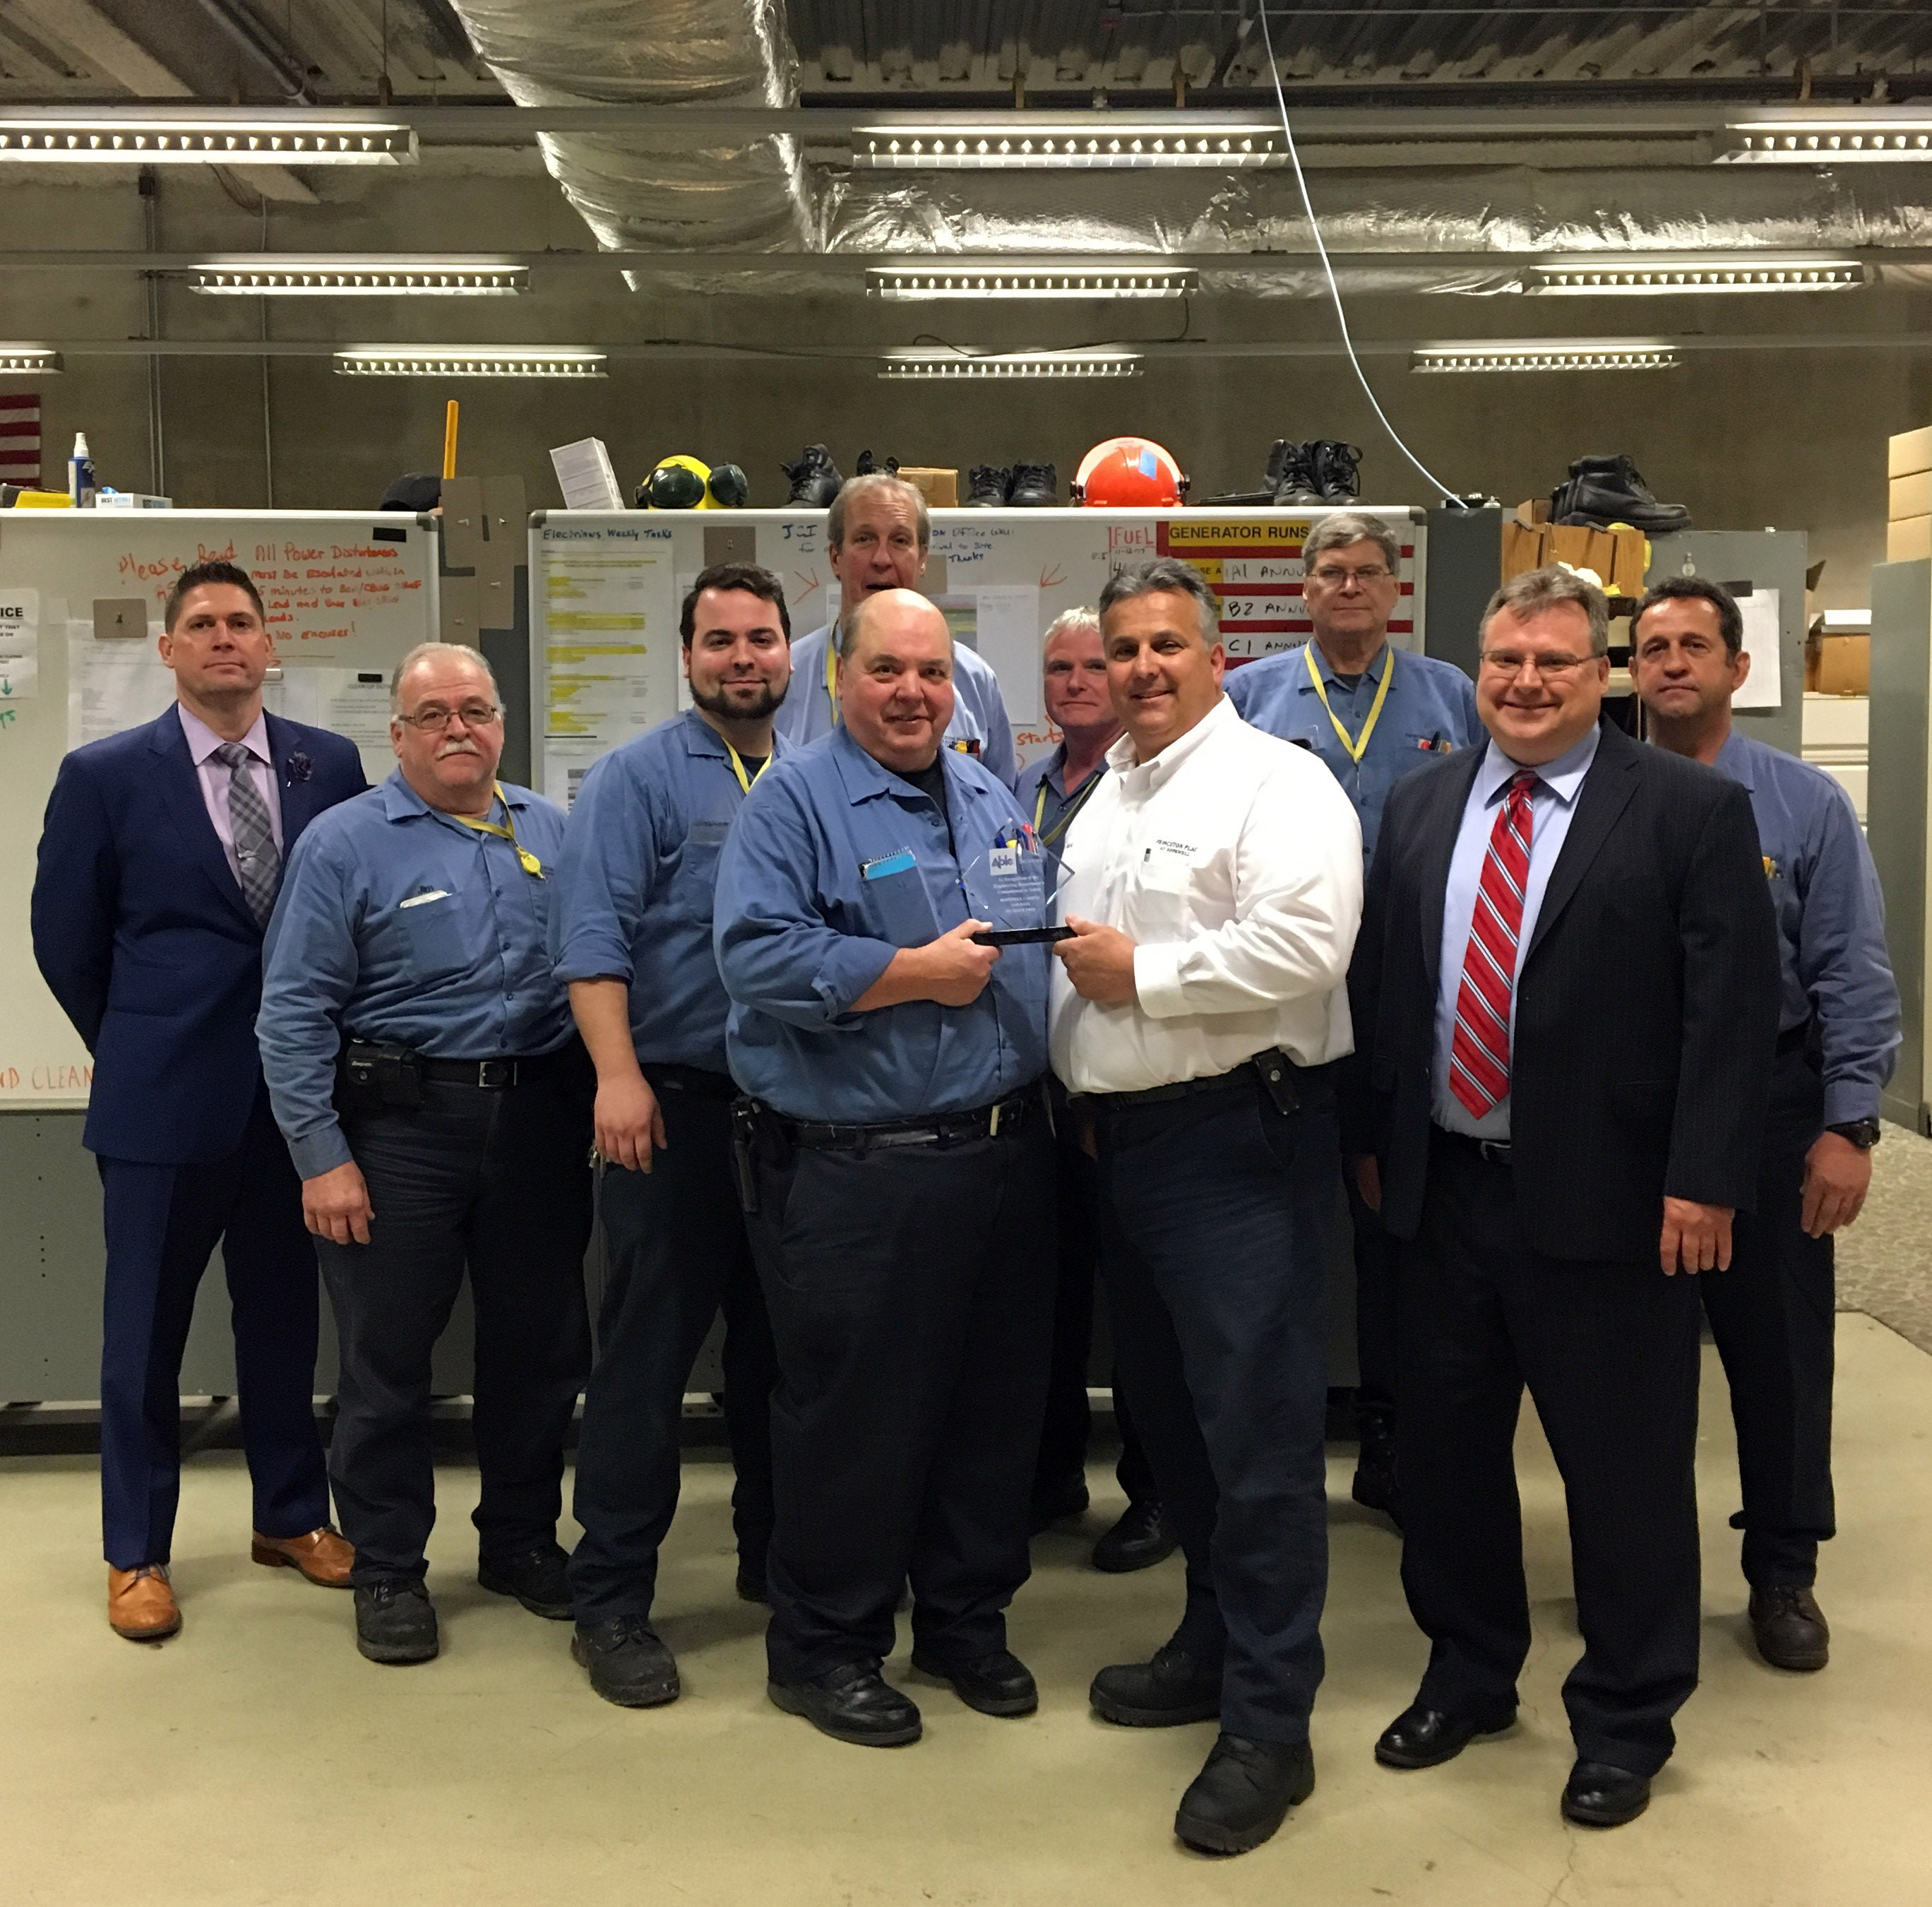 The New Jersey team holding an award for safety